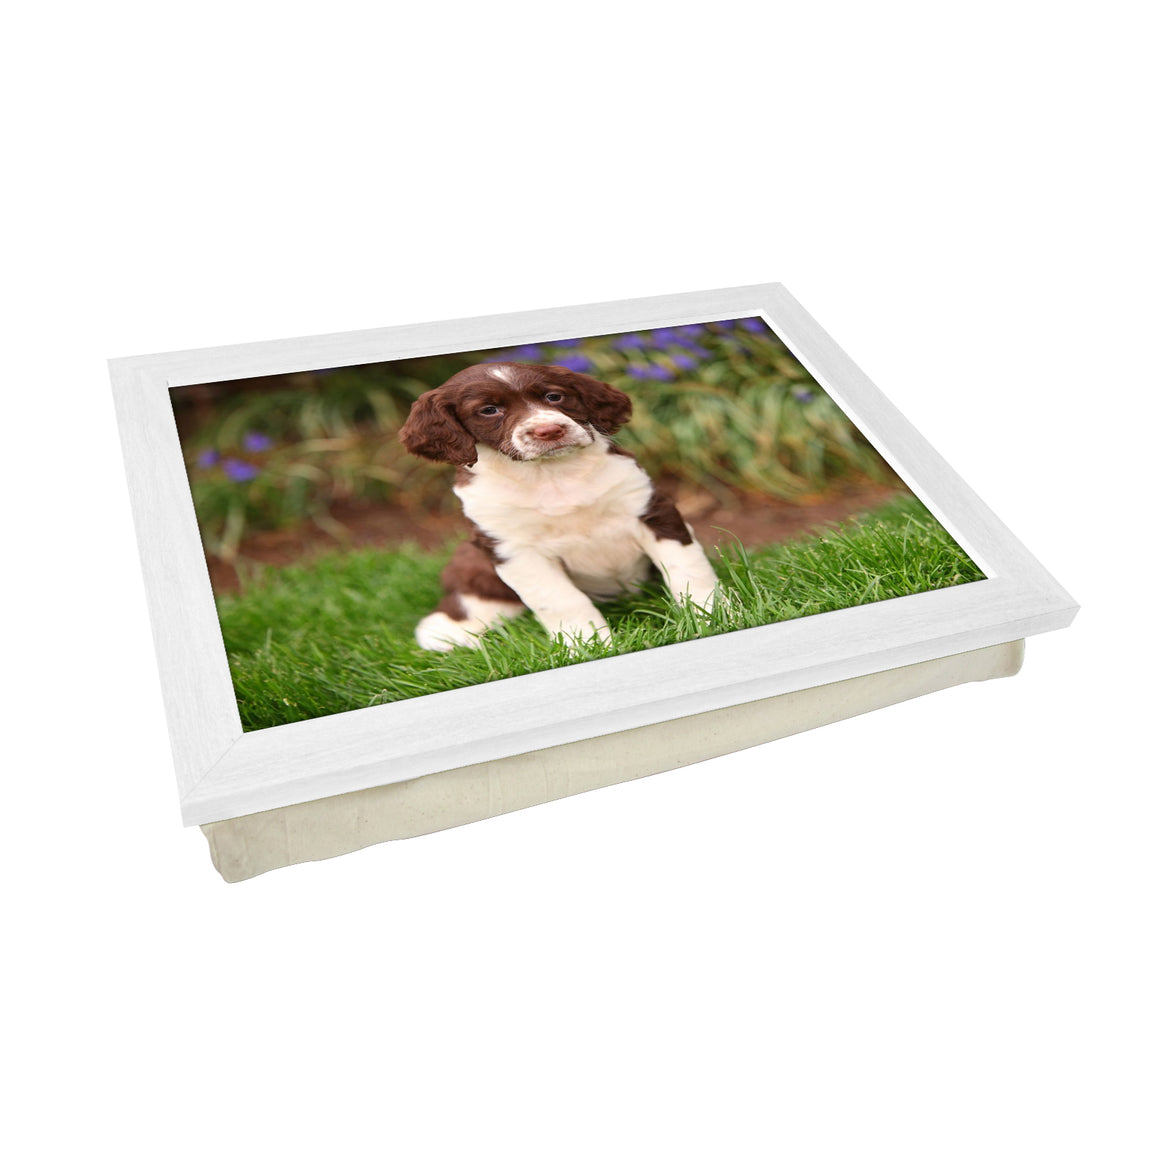 Springer Spaniel Puppy Lap Tray - L0586